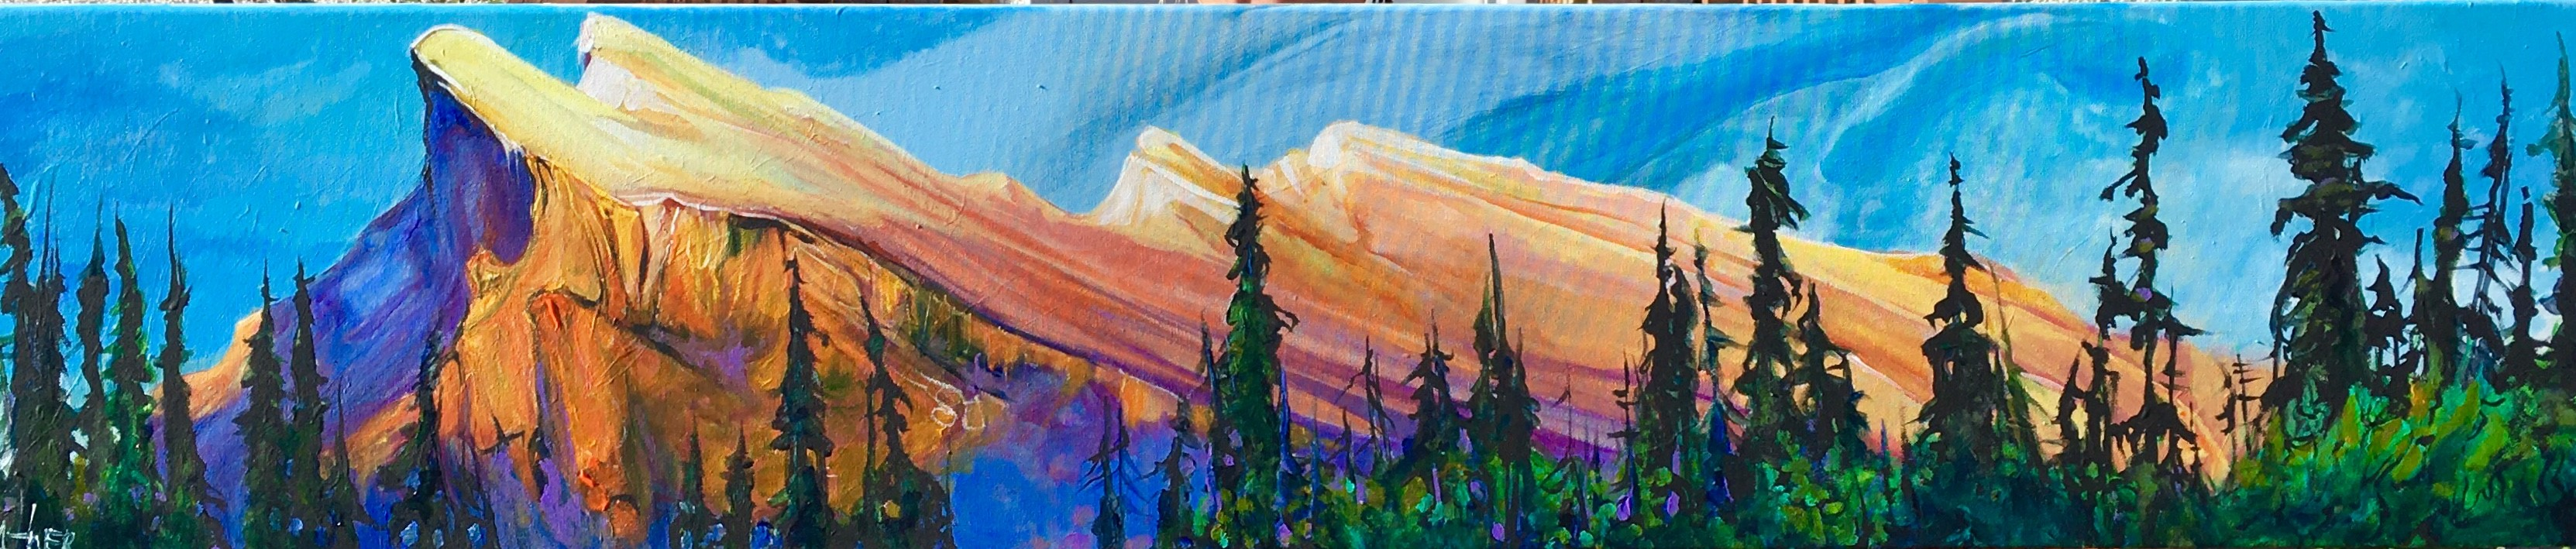 Mount Rundle Living on the Edge